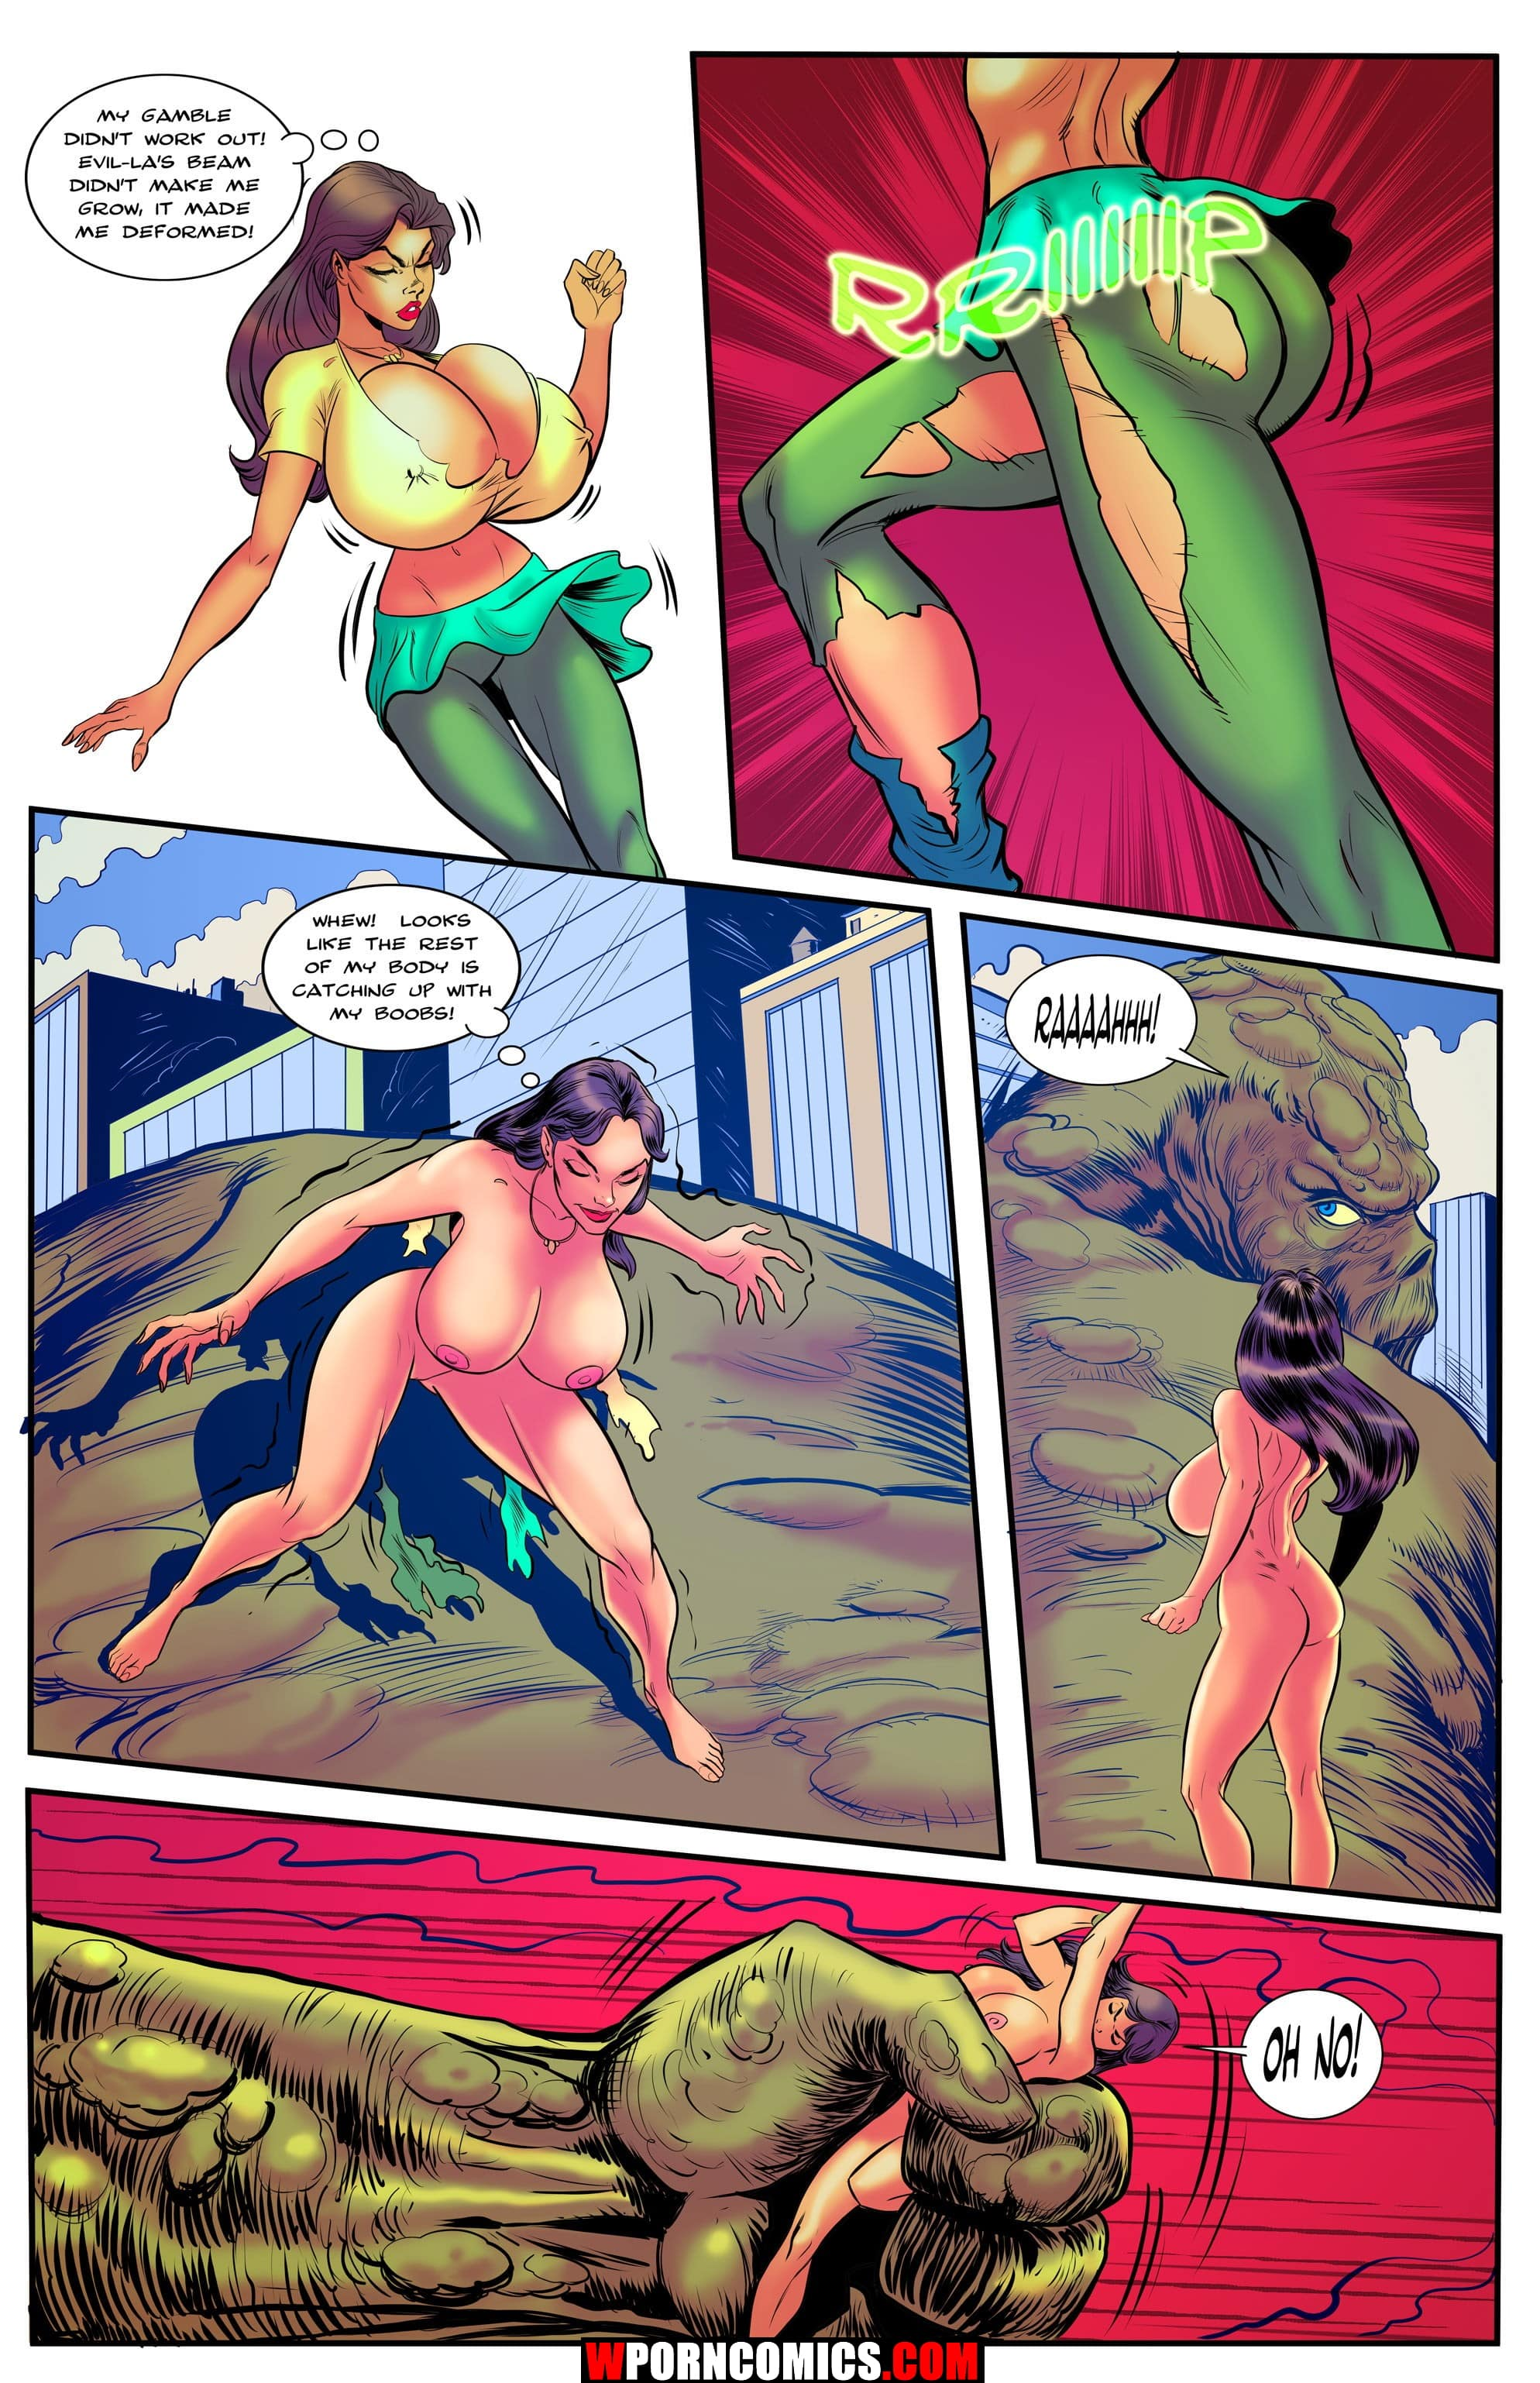 porn-comic-megaforce-2019-11-06/porn-comic-megaforce-2019-11-06-44822.jpg